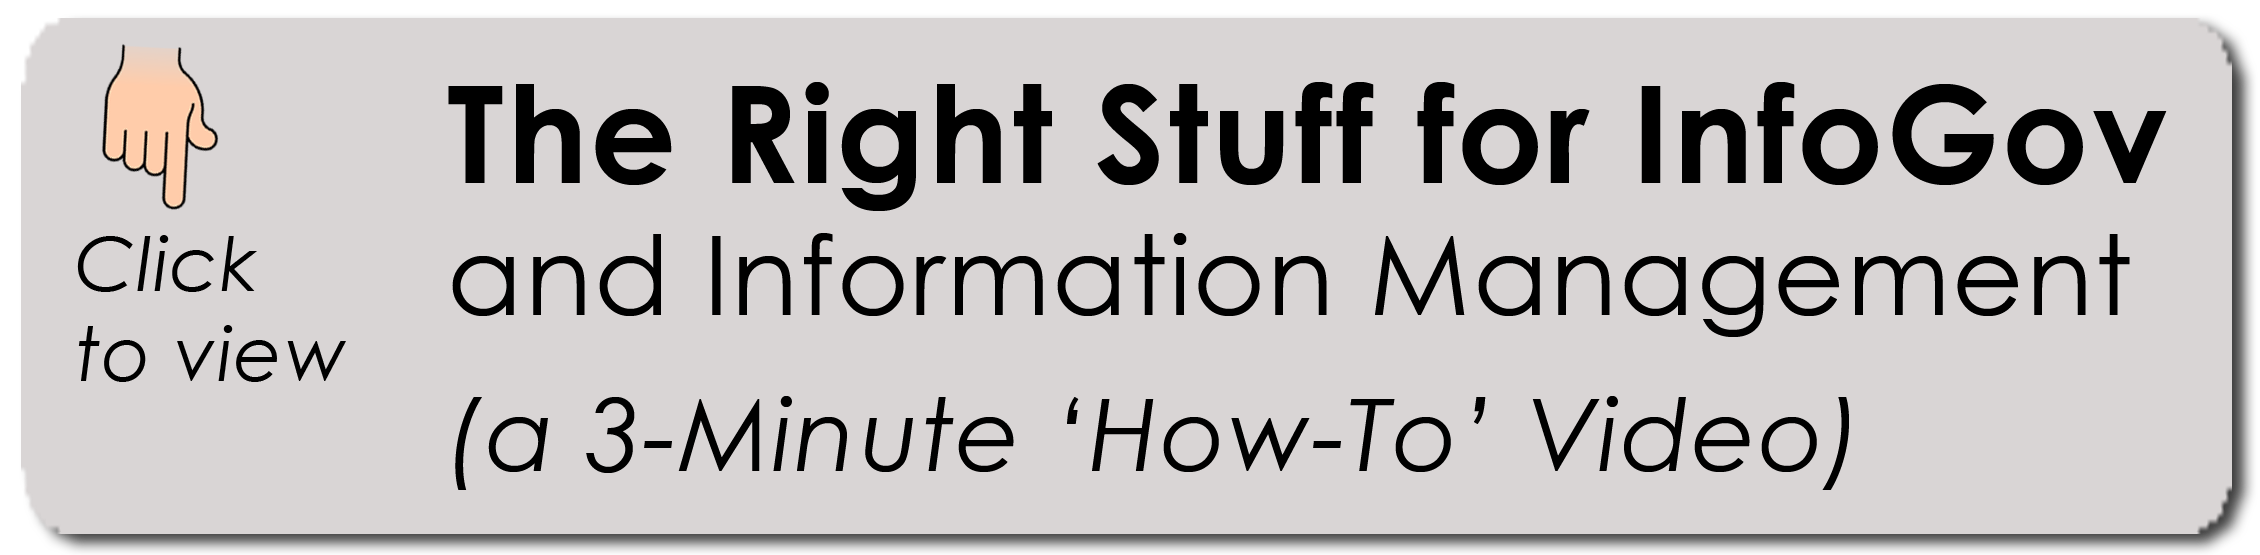 The Right Stuff for InfoGov